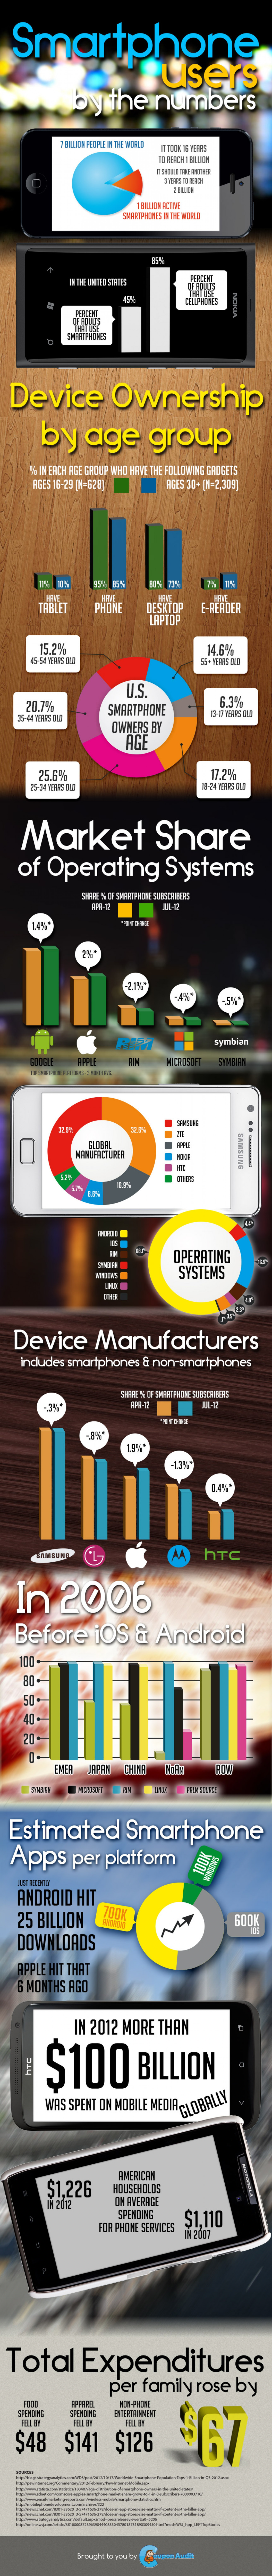 Smart Phone Users By The Numbers